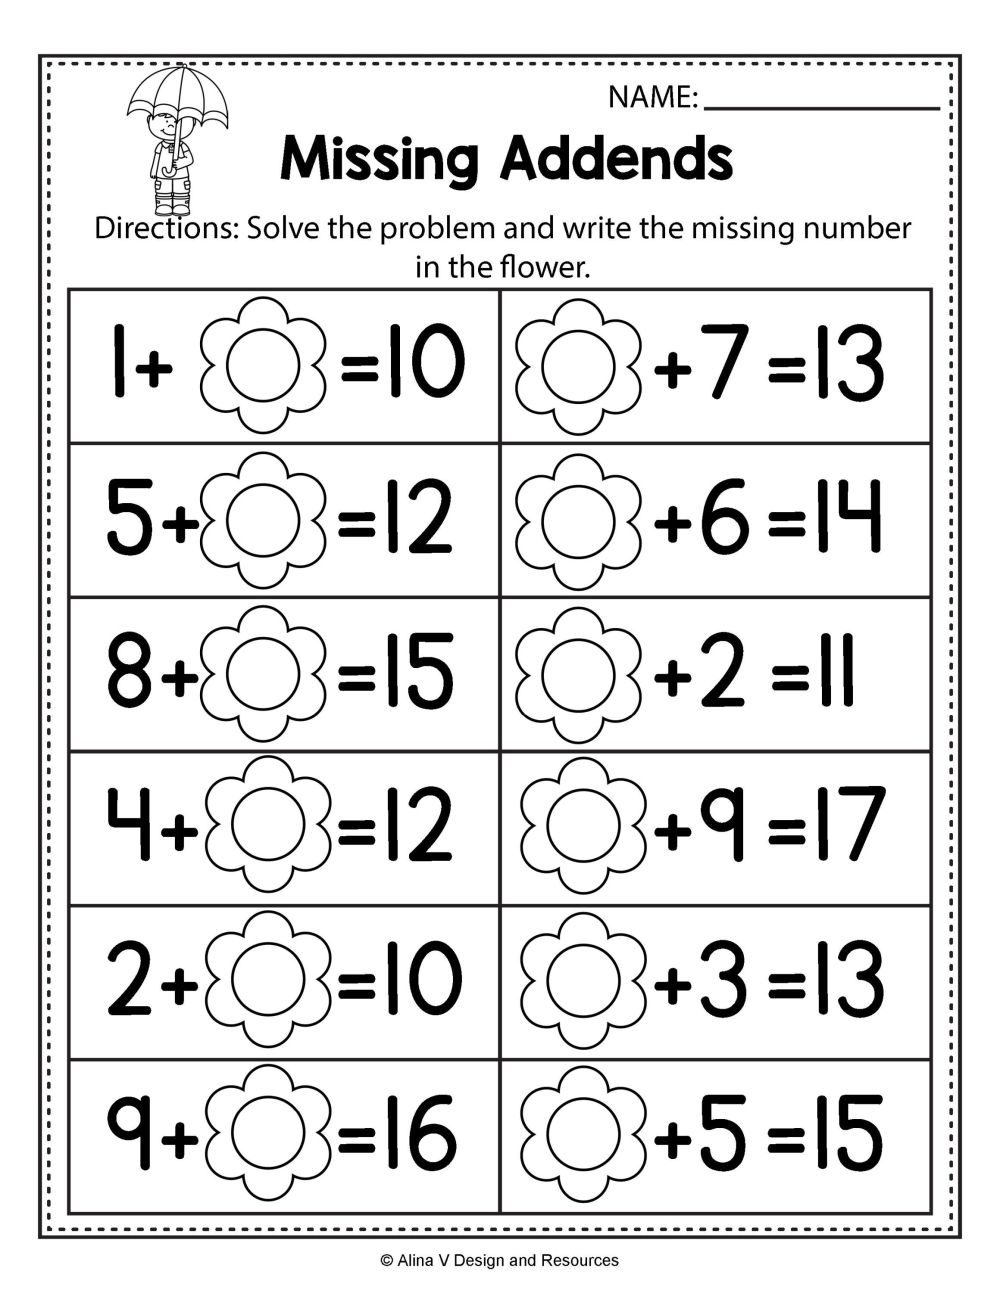 medium resolution of 21 Best 1st Grade Matching Worksheets images on Best Worksheets Collection